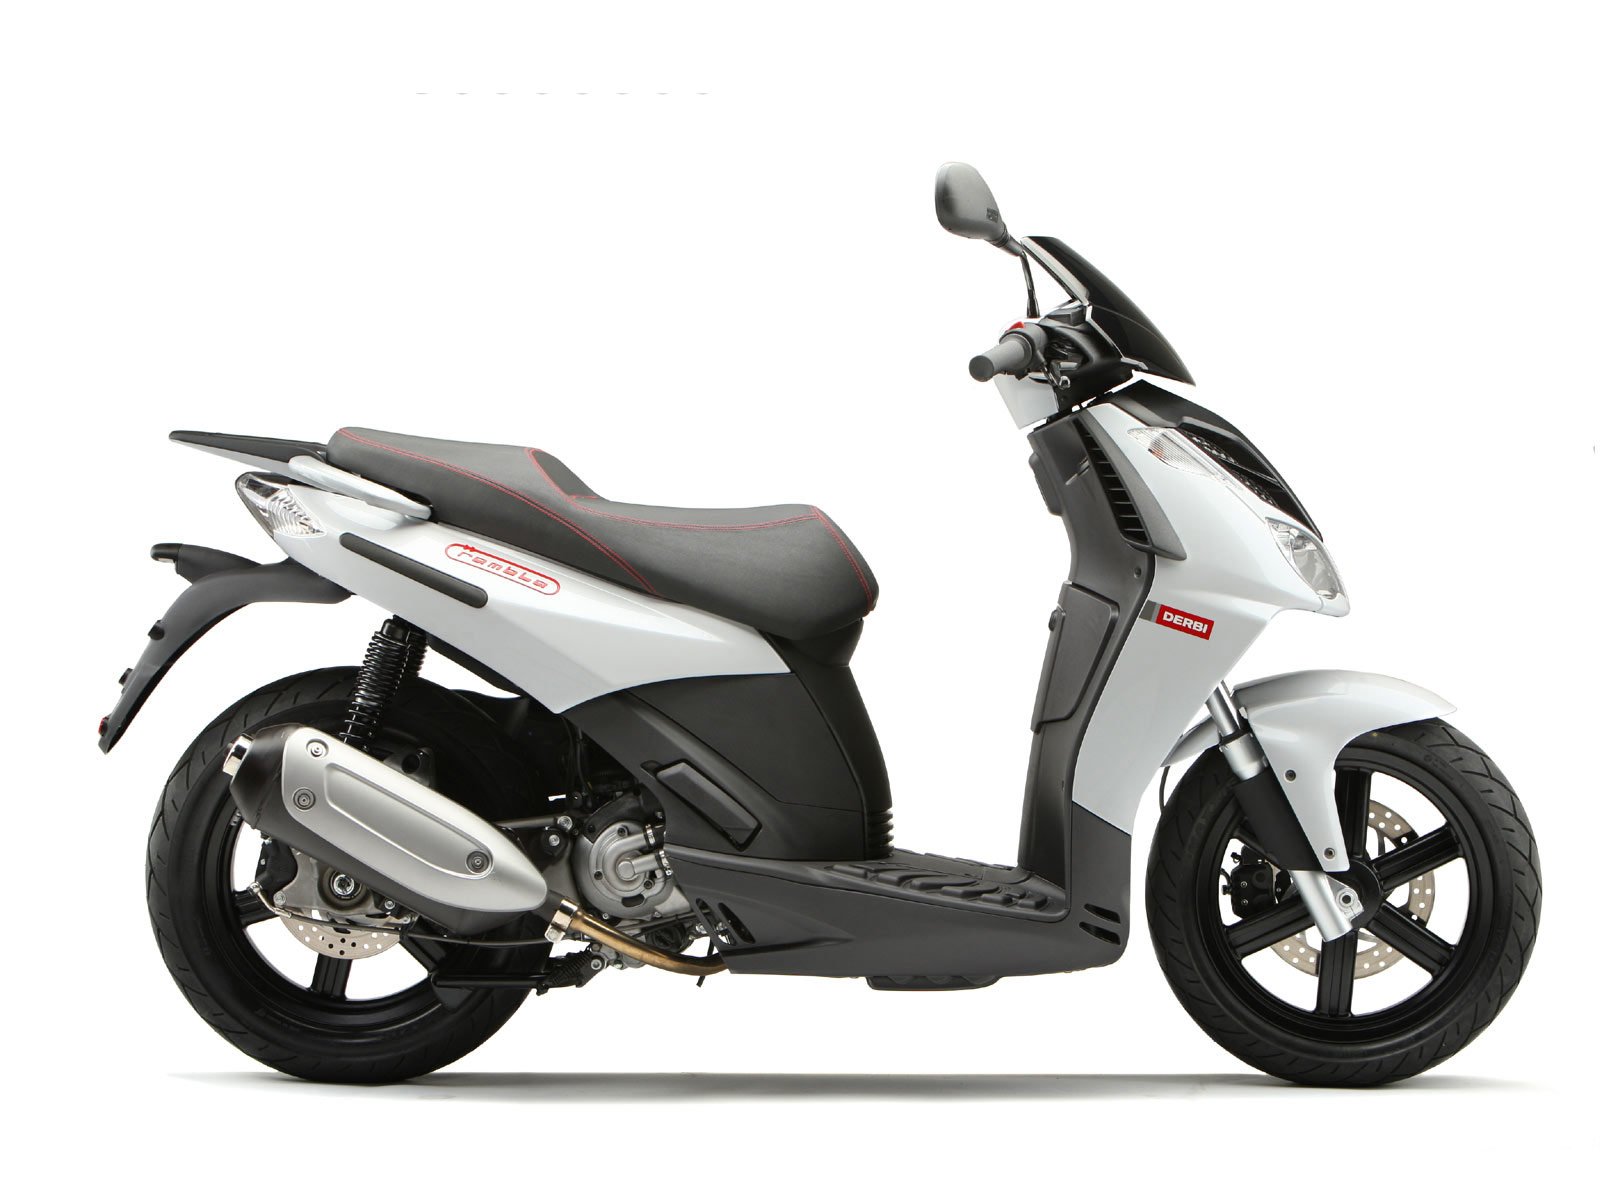 2008 derbi rambla 125 scooter pictures accident lawyers info. Black Bedroom Furniture Sets. Home Design Ideas